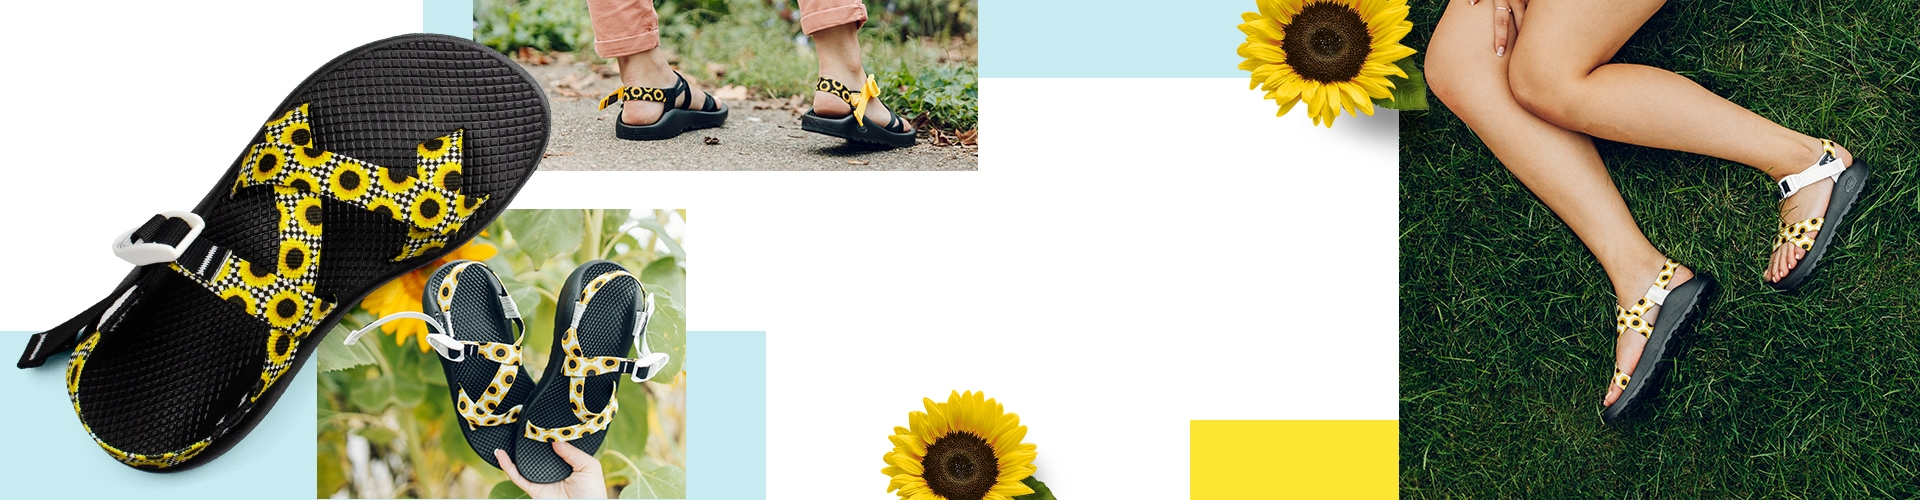 Themed product image page layout (Spring them for Chacos sandals)